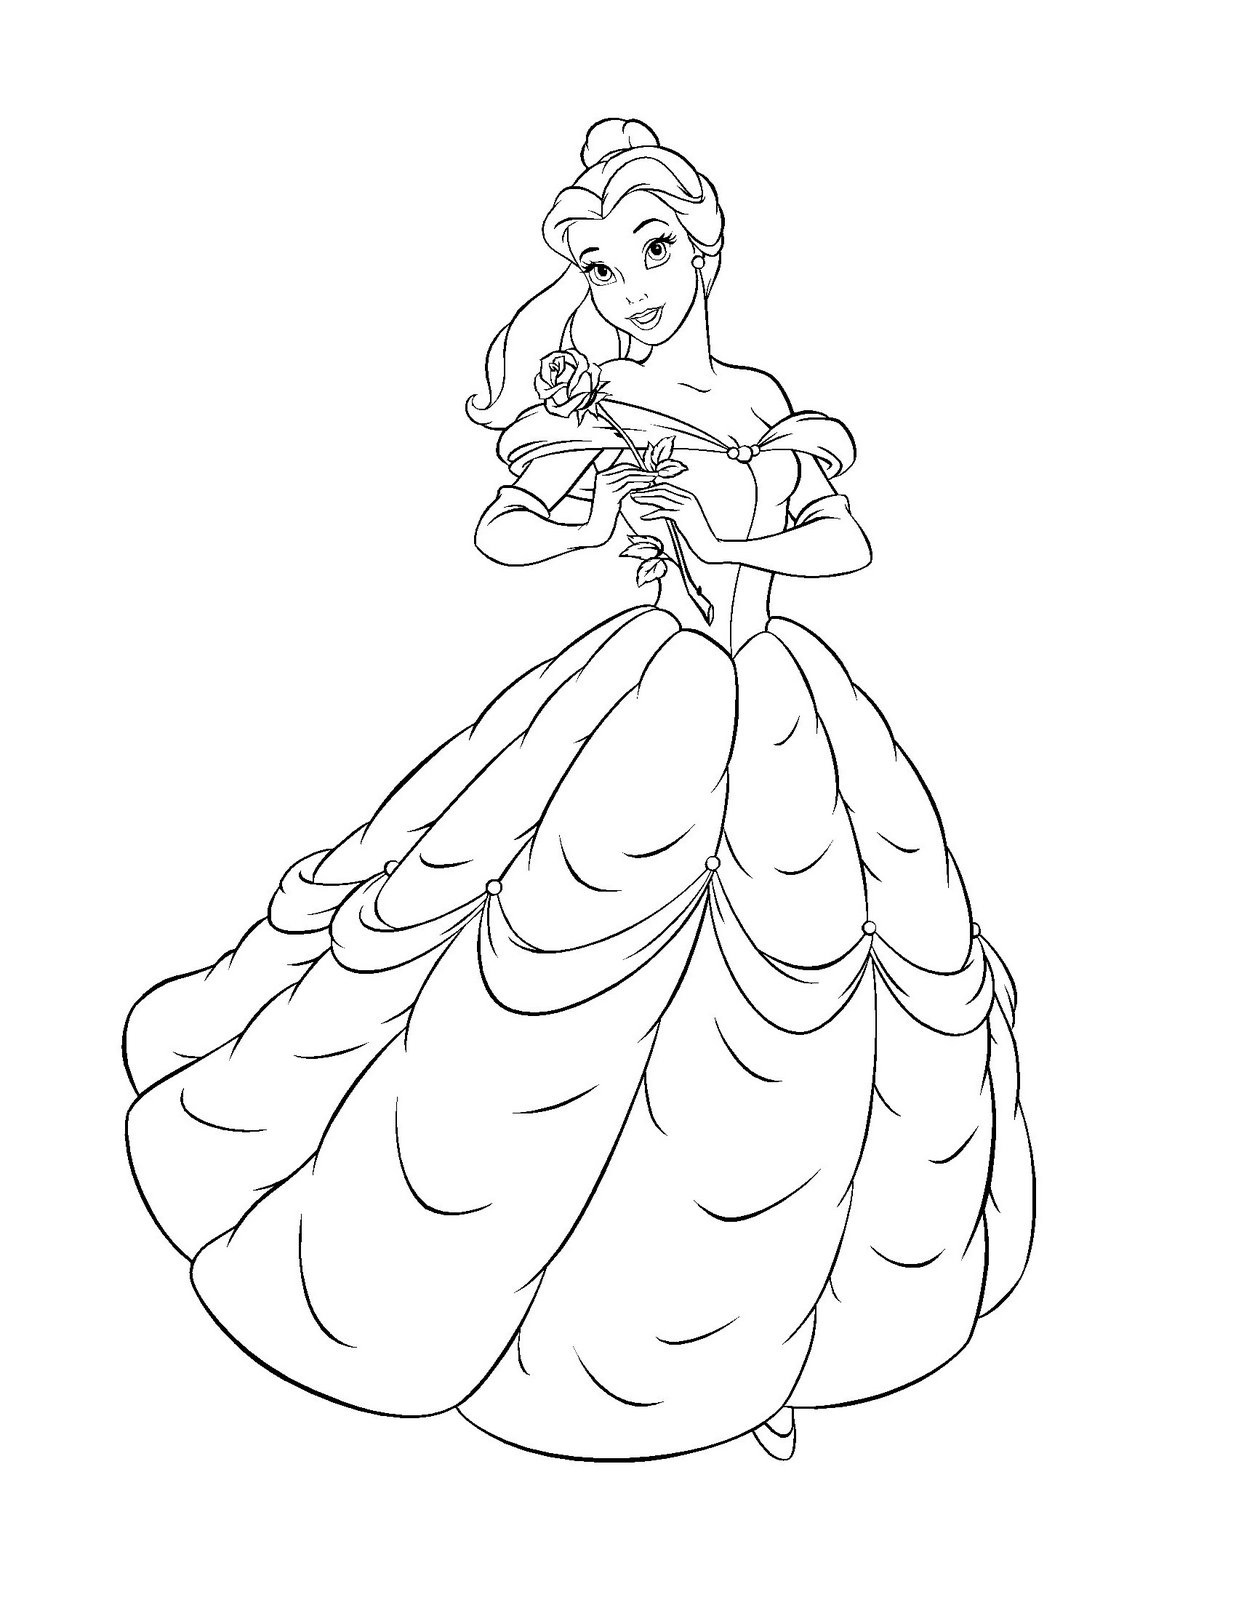 Free Printable Belle Coloring Pages For Kids Coloring Pages For Children